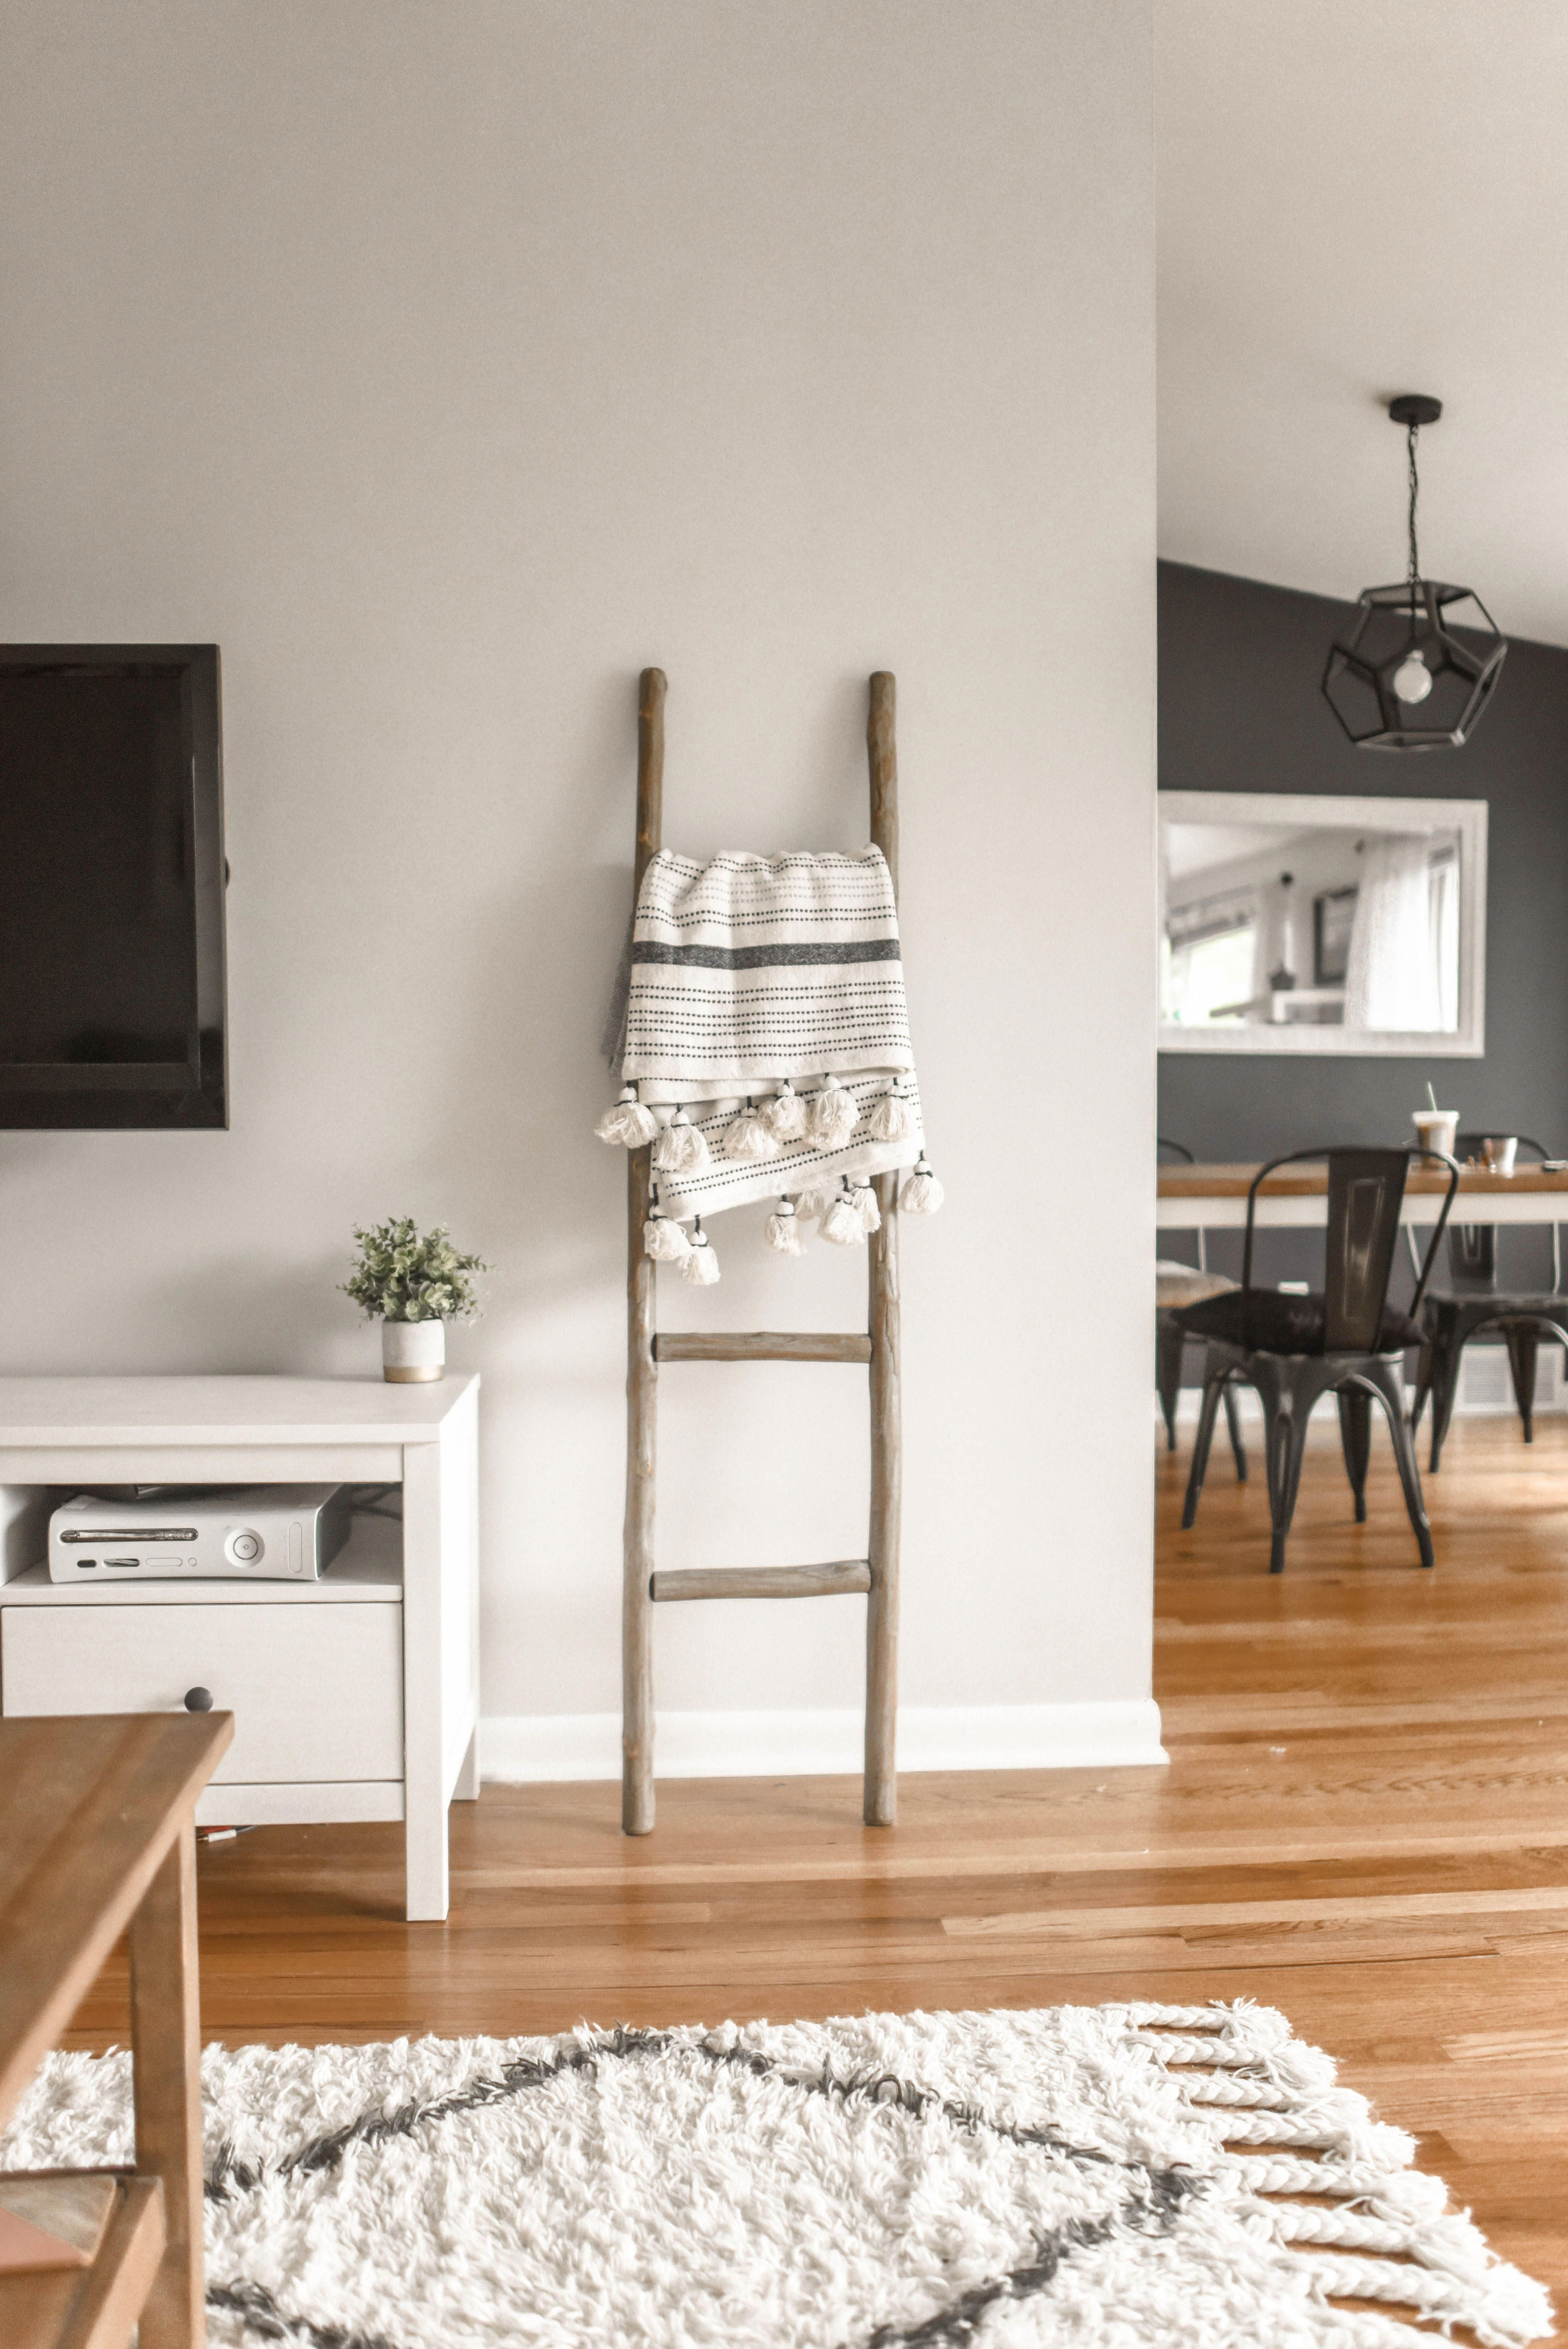 Home Interior Design Styles on types of design styles, home interior small spaces, home interior ideas, home interior staircase, interior decor styles, home queen anne victorian house, home interior inside house, home decoration interior, clothing design styles, decorating design styles, home interior catalog, interior decorating styles, home molding styles, home lifestyle design, home interior water features, home remodeling styles, office design styles, house design styles, home interior graphics, sofa design styles,